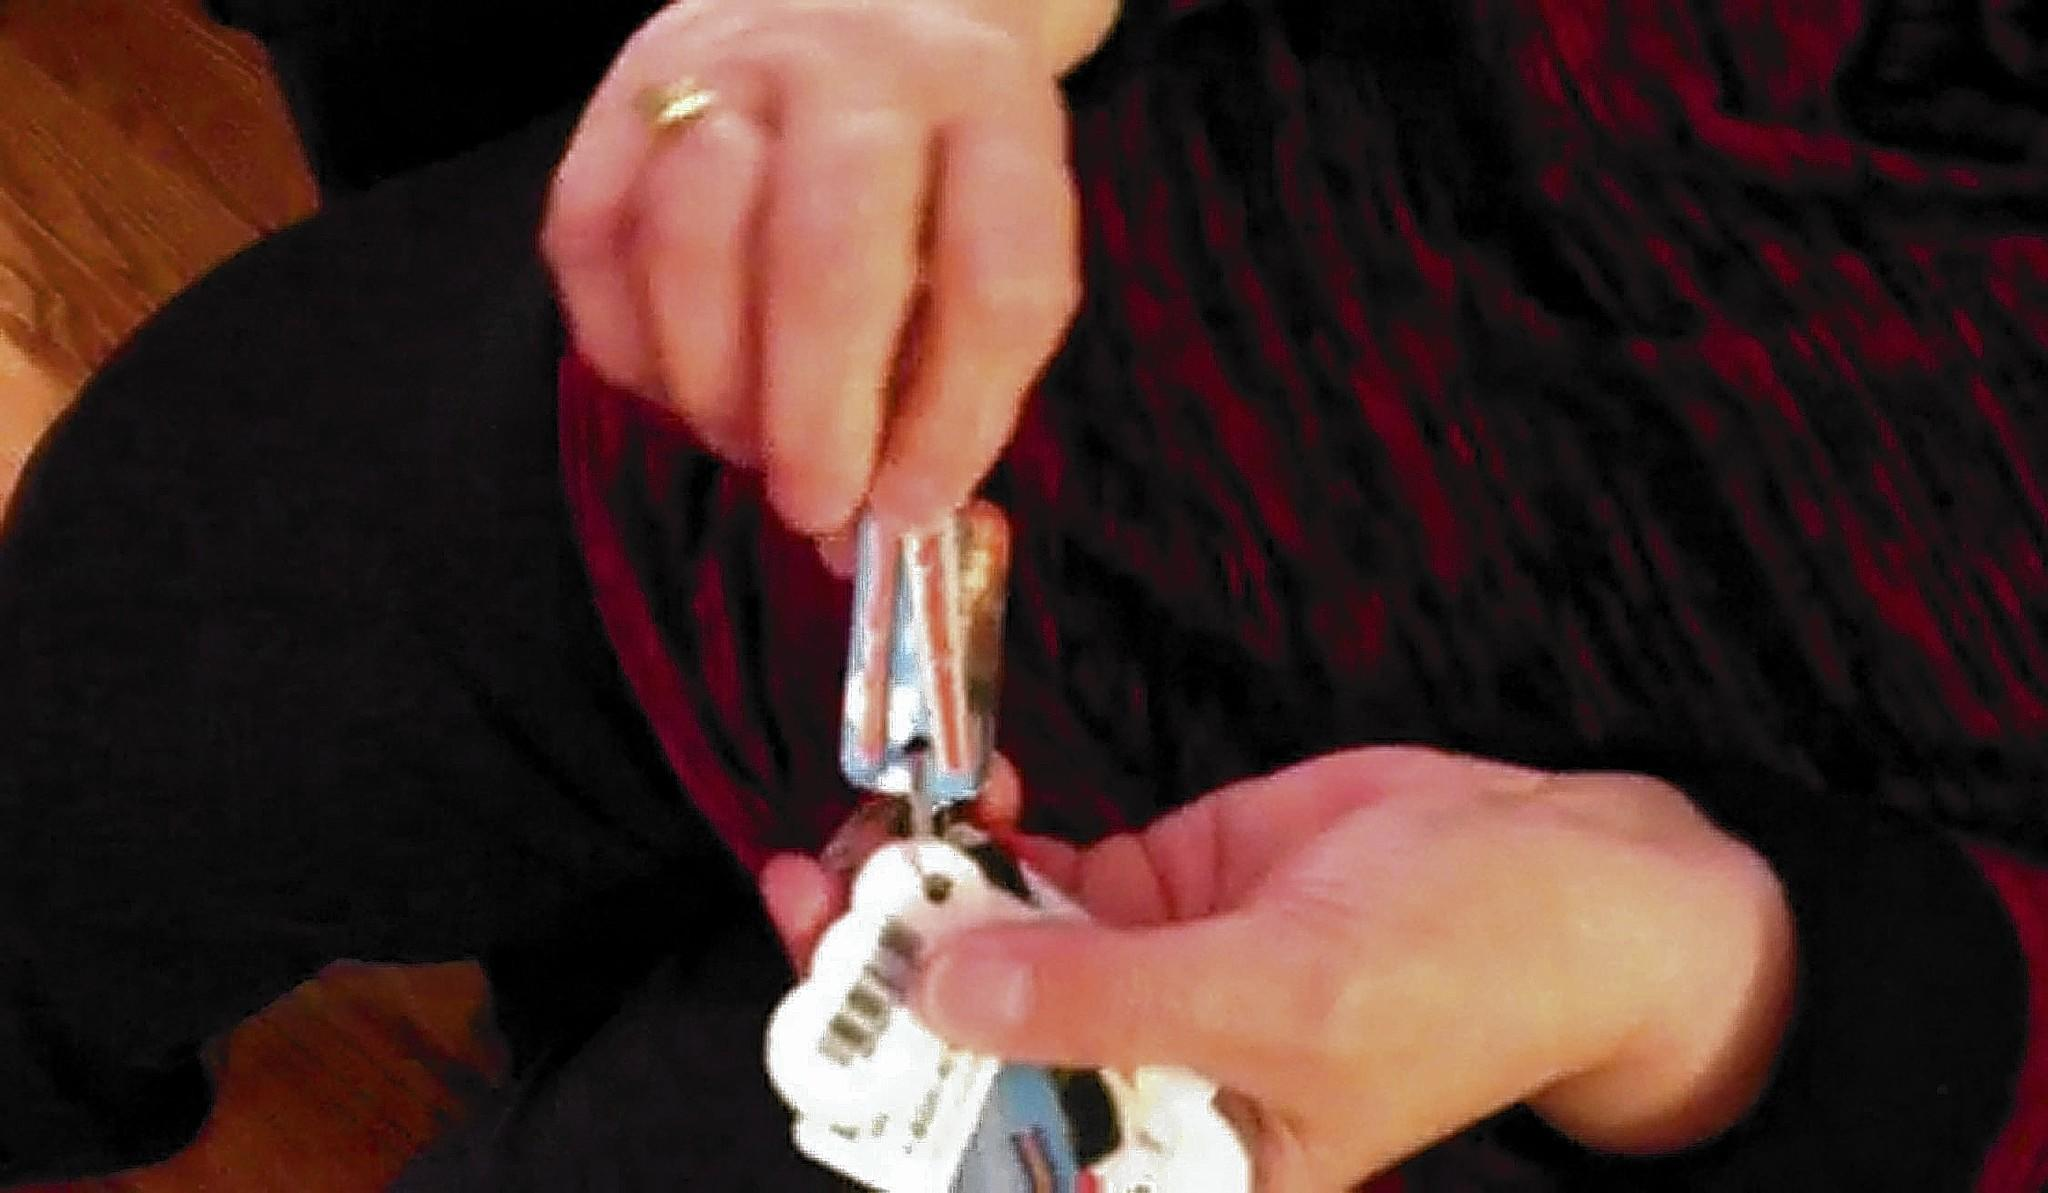 Virginia Fahr of Walnutport puts all of her shopping rewards cards on a separate key ring so she always has them handy and her keys don't get lost in the clutter.